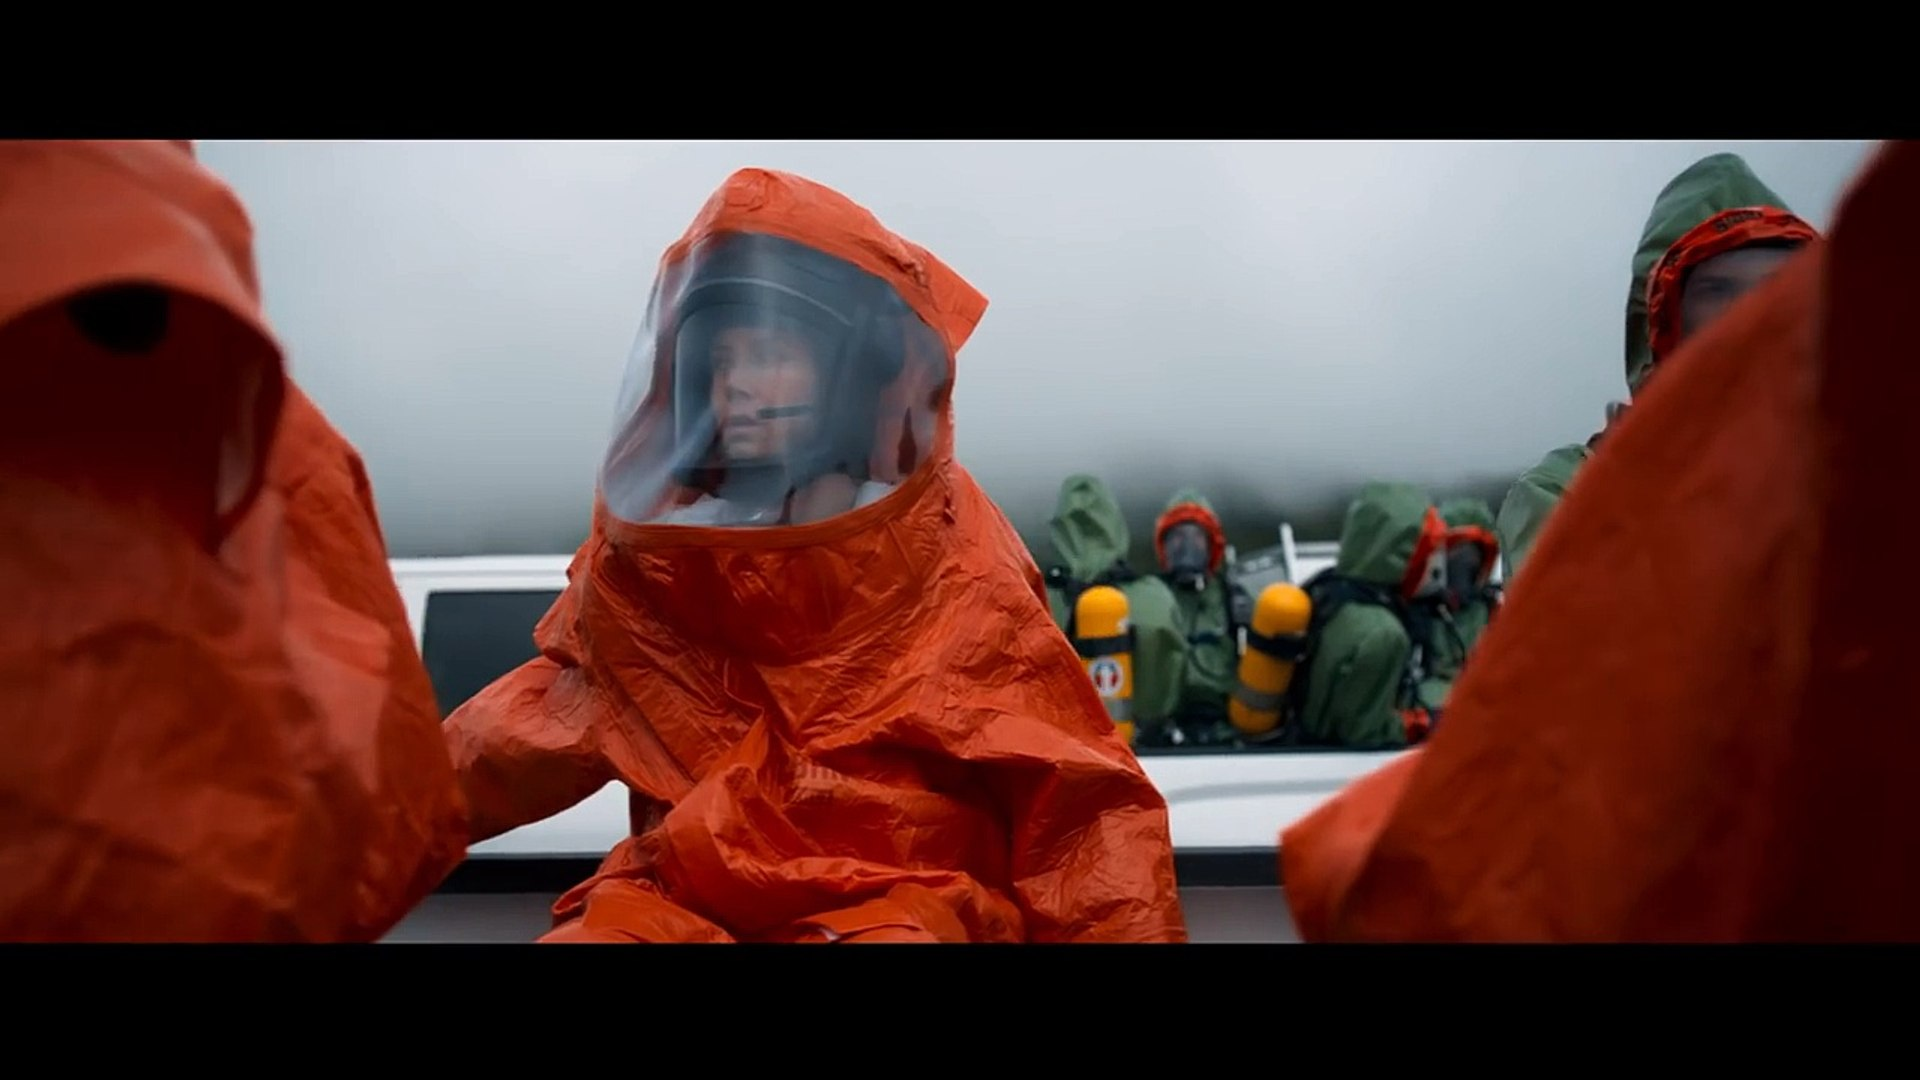 Arrival Trailer #1 (2016) - Science Fiction Movie